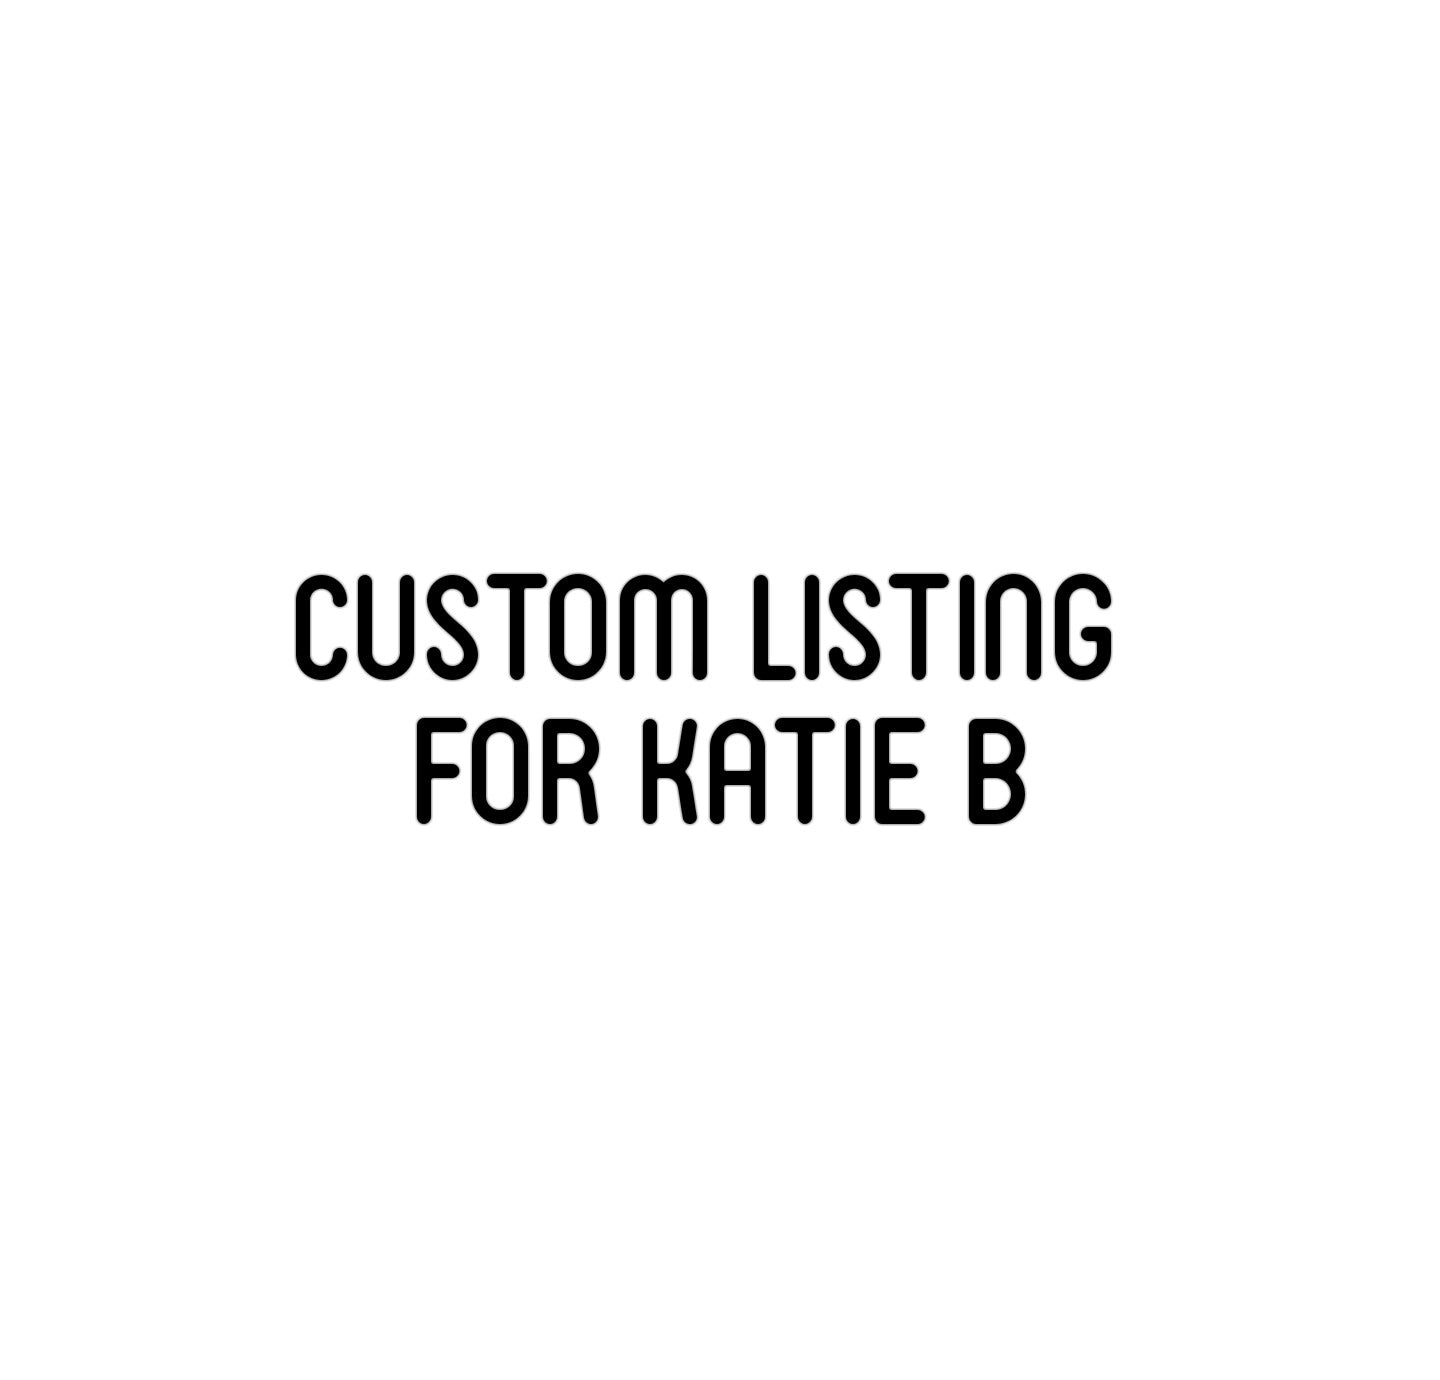 Custom listing for Katie B